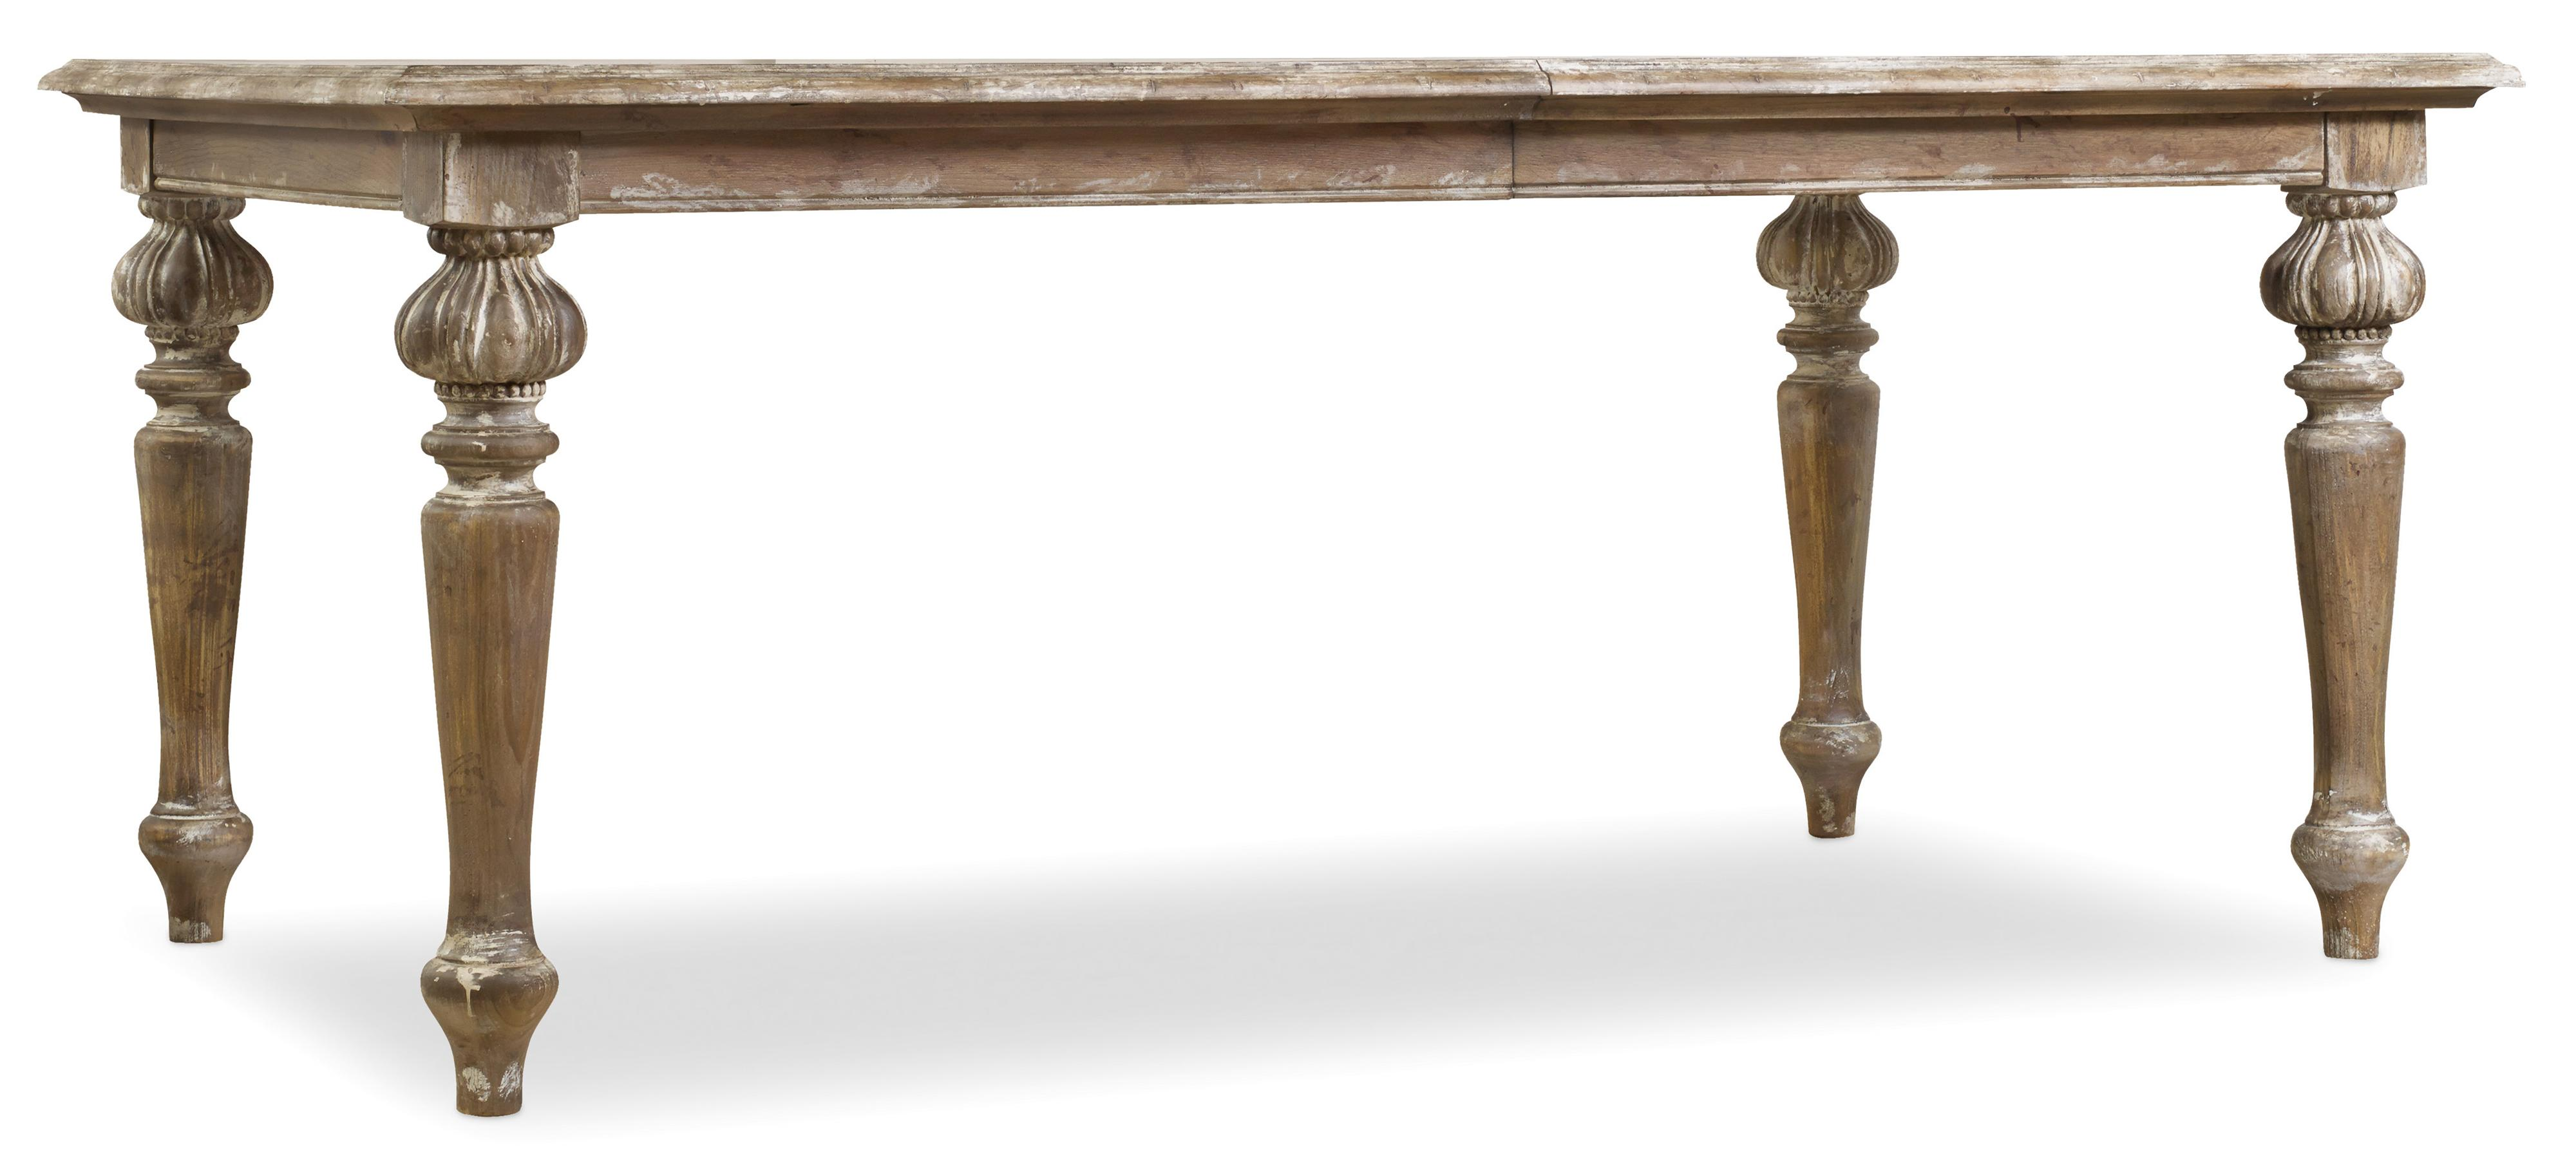 Chatelet Rectangle Leg Dining Table by Hooker Furniture at Miller Waldrop Furniture and Decor